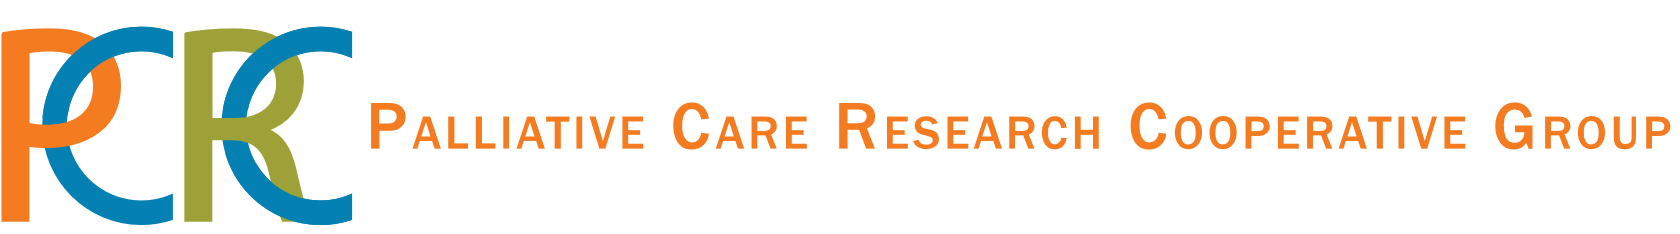 Palliative Care Research Cooperative QDR-EOLPC  logo